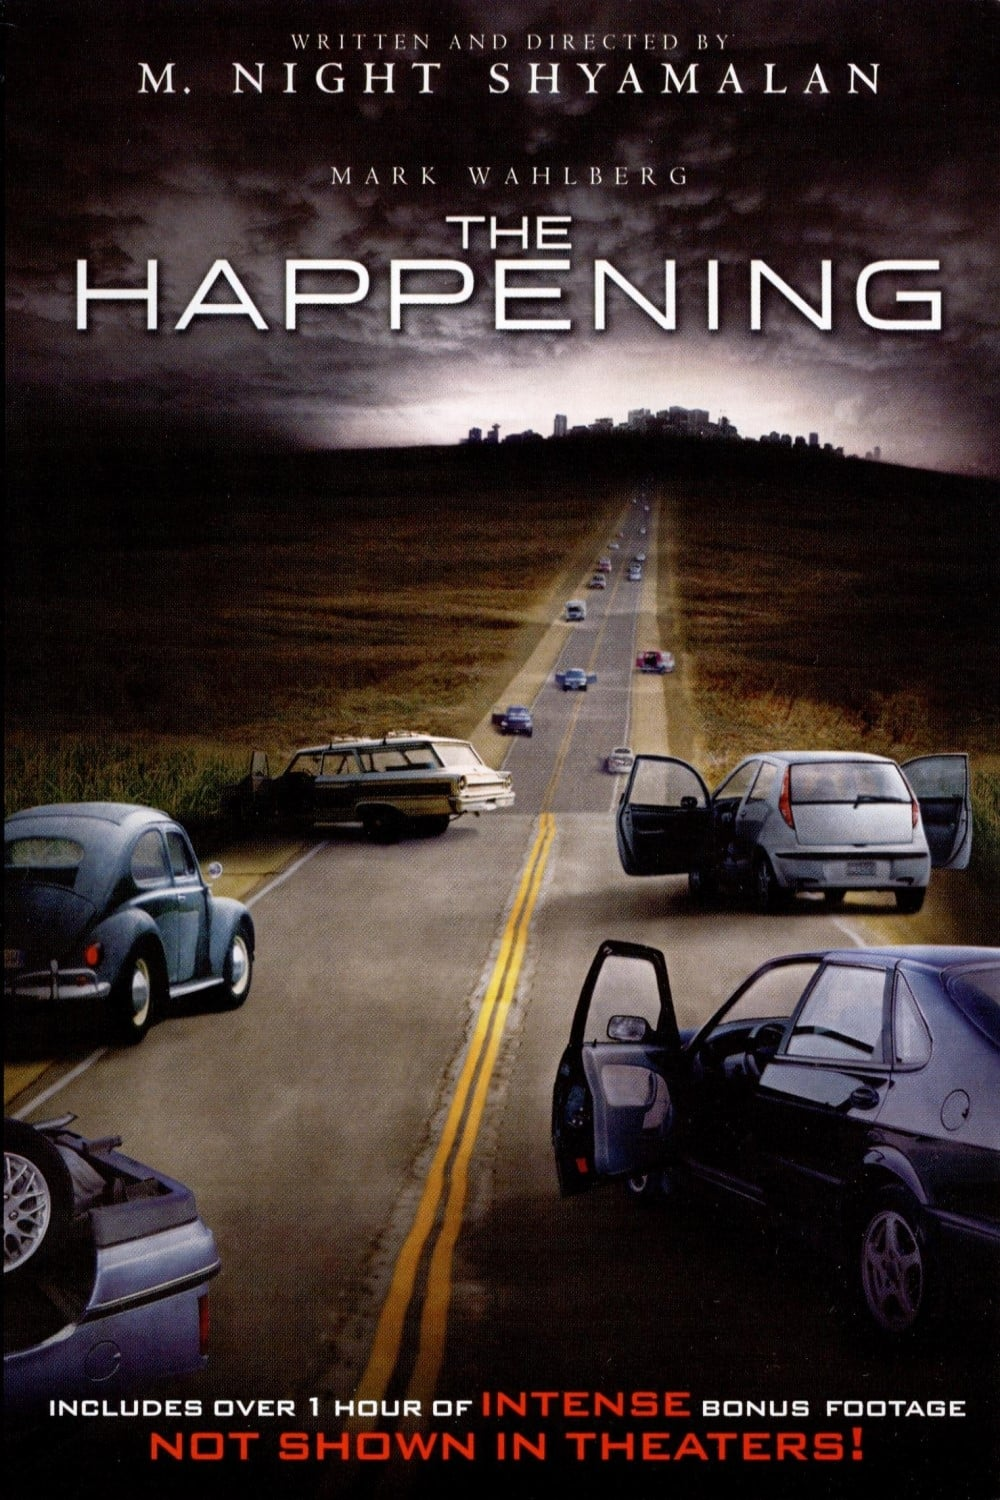 Visions of 'The Happening' (2008)